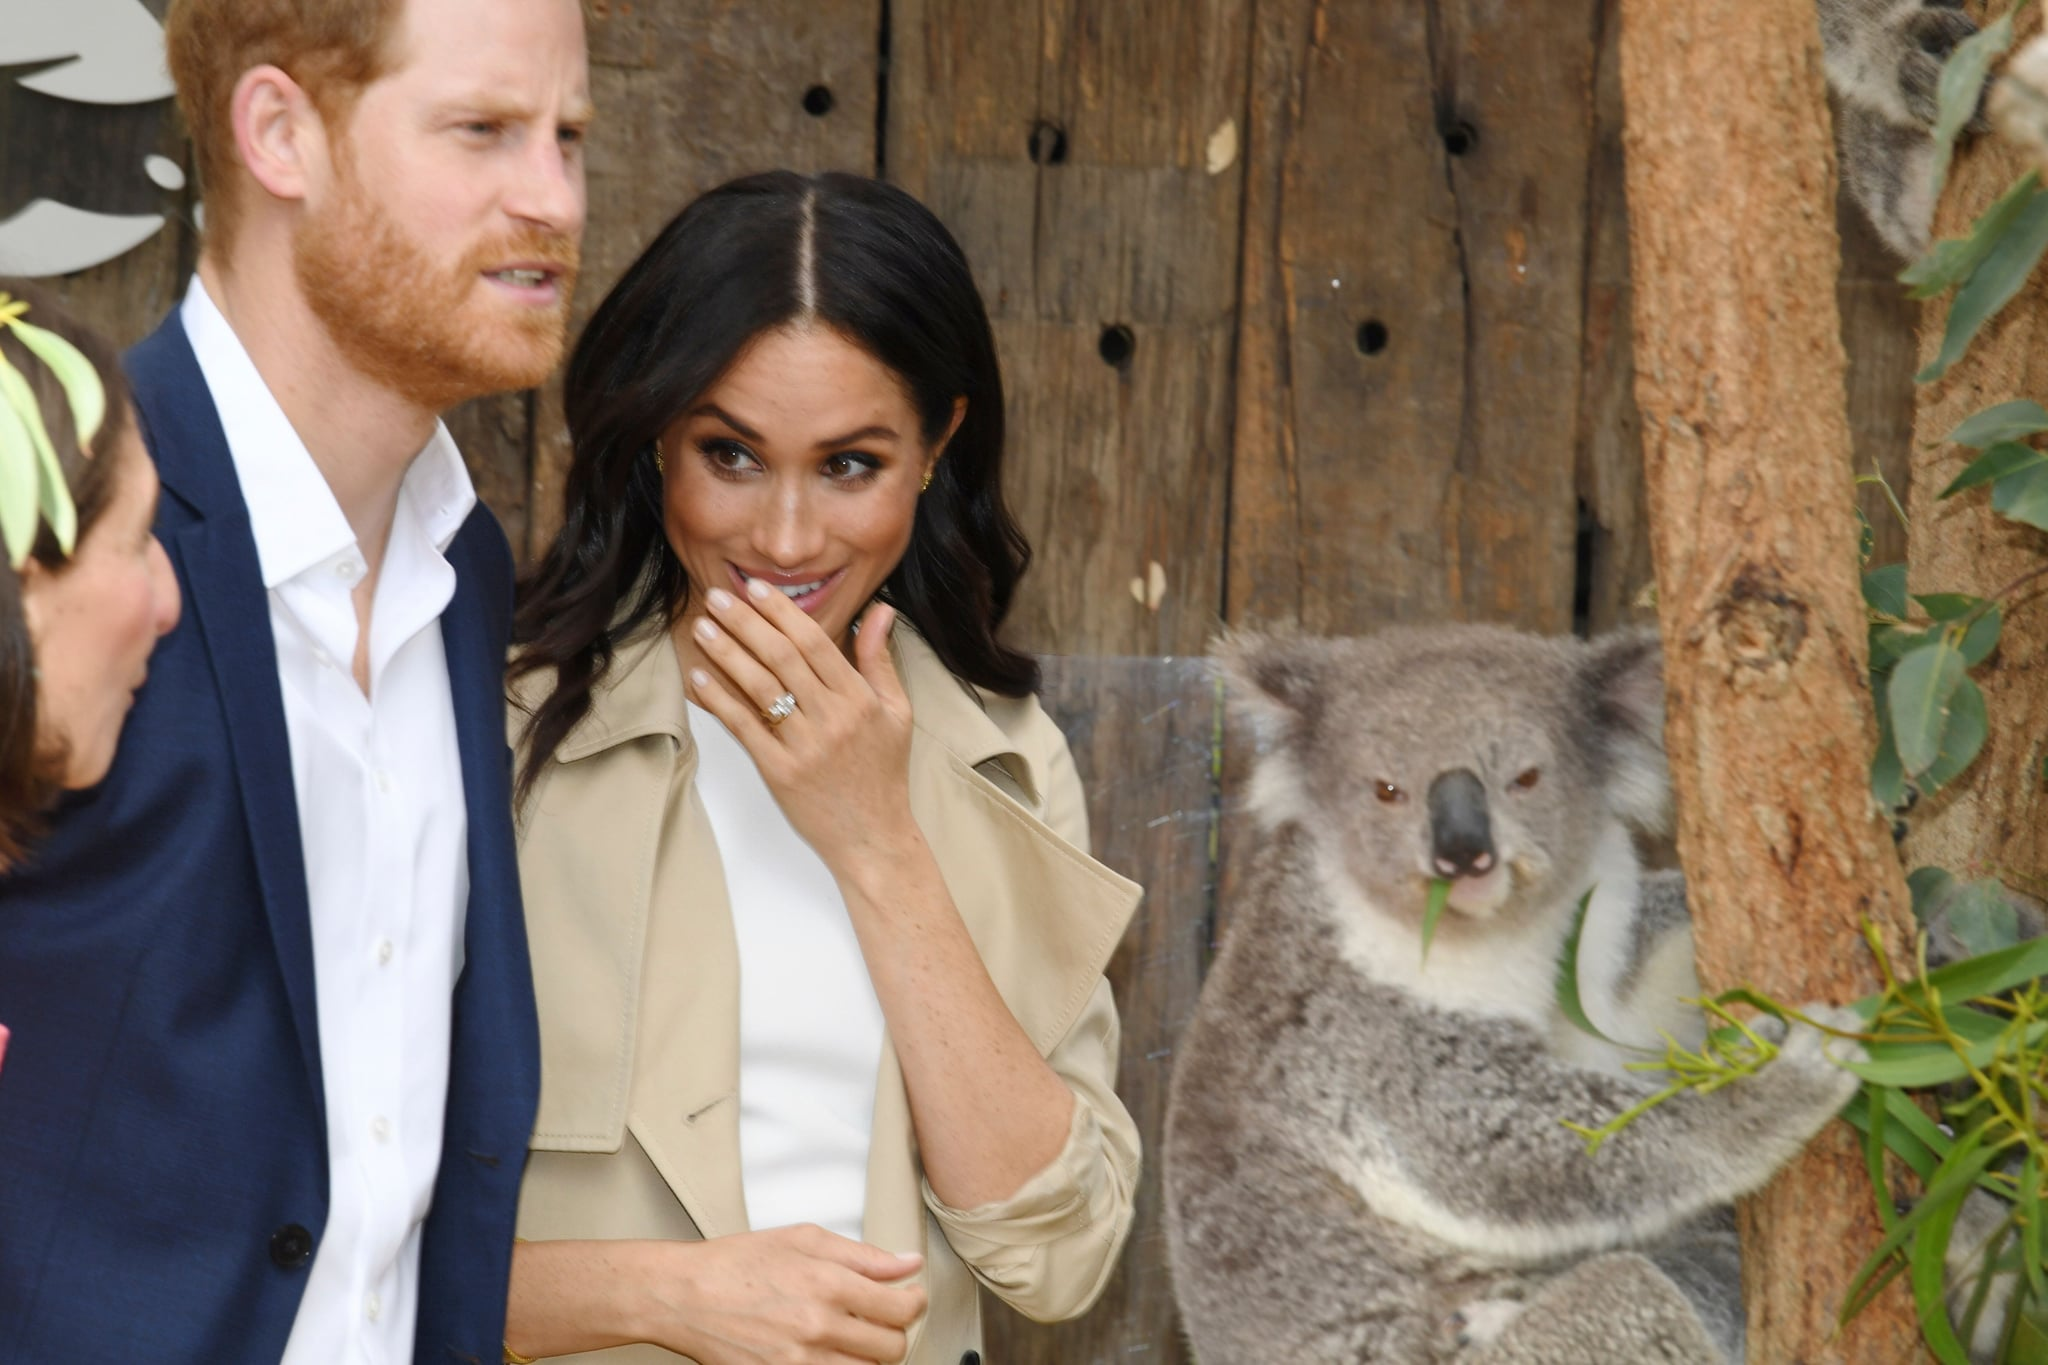 Britain's Prince Harry and his wife Meghan meet a koala named Ruby and its koala joey named Meghan after the Duchess of Sussex during a visit to Taronga Zoo in Sydney on October 16, 2018. - Prince Harry and Meghan have made their first appearances since announcing they are expecting a baby, kicking off a high-profile Pacific trip with a photo in front of Sydney's dazzling Opera House and posing with koalas. (Photo by DEAN LEWINS / POOL / AFP)        (Photo credit should read DEAN LEWINS/AFP/Getty Images)